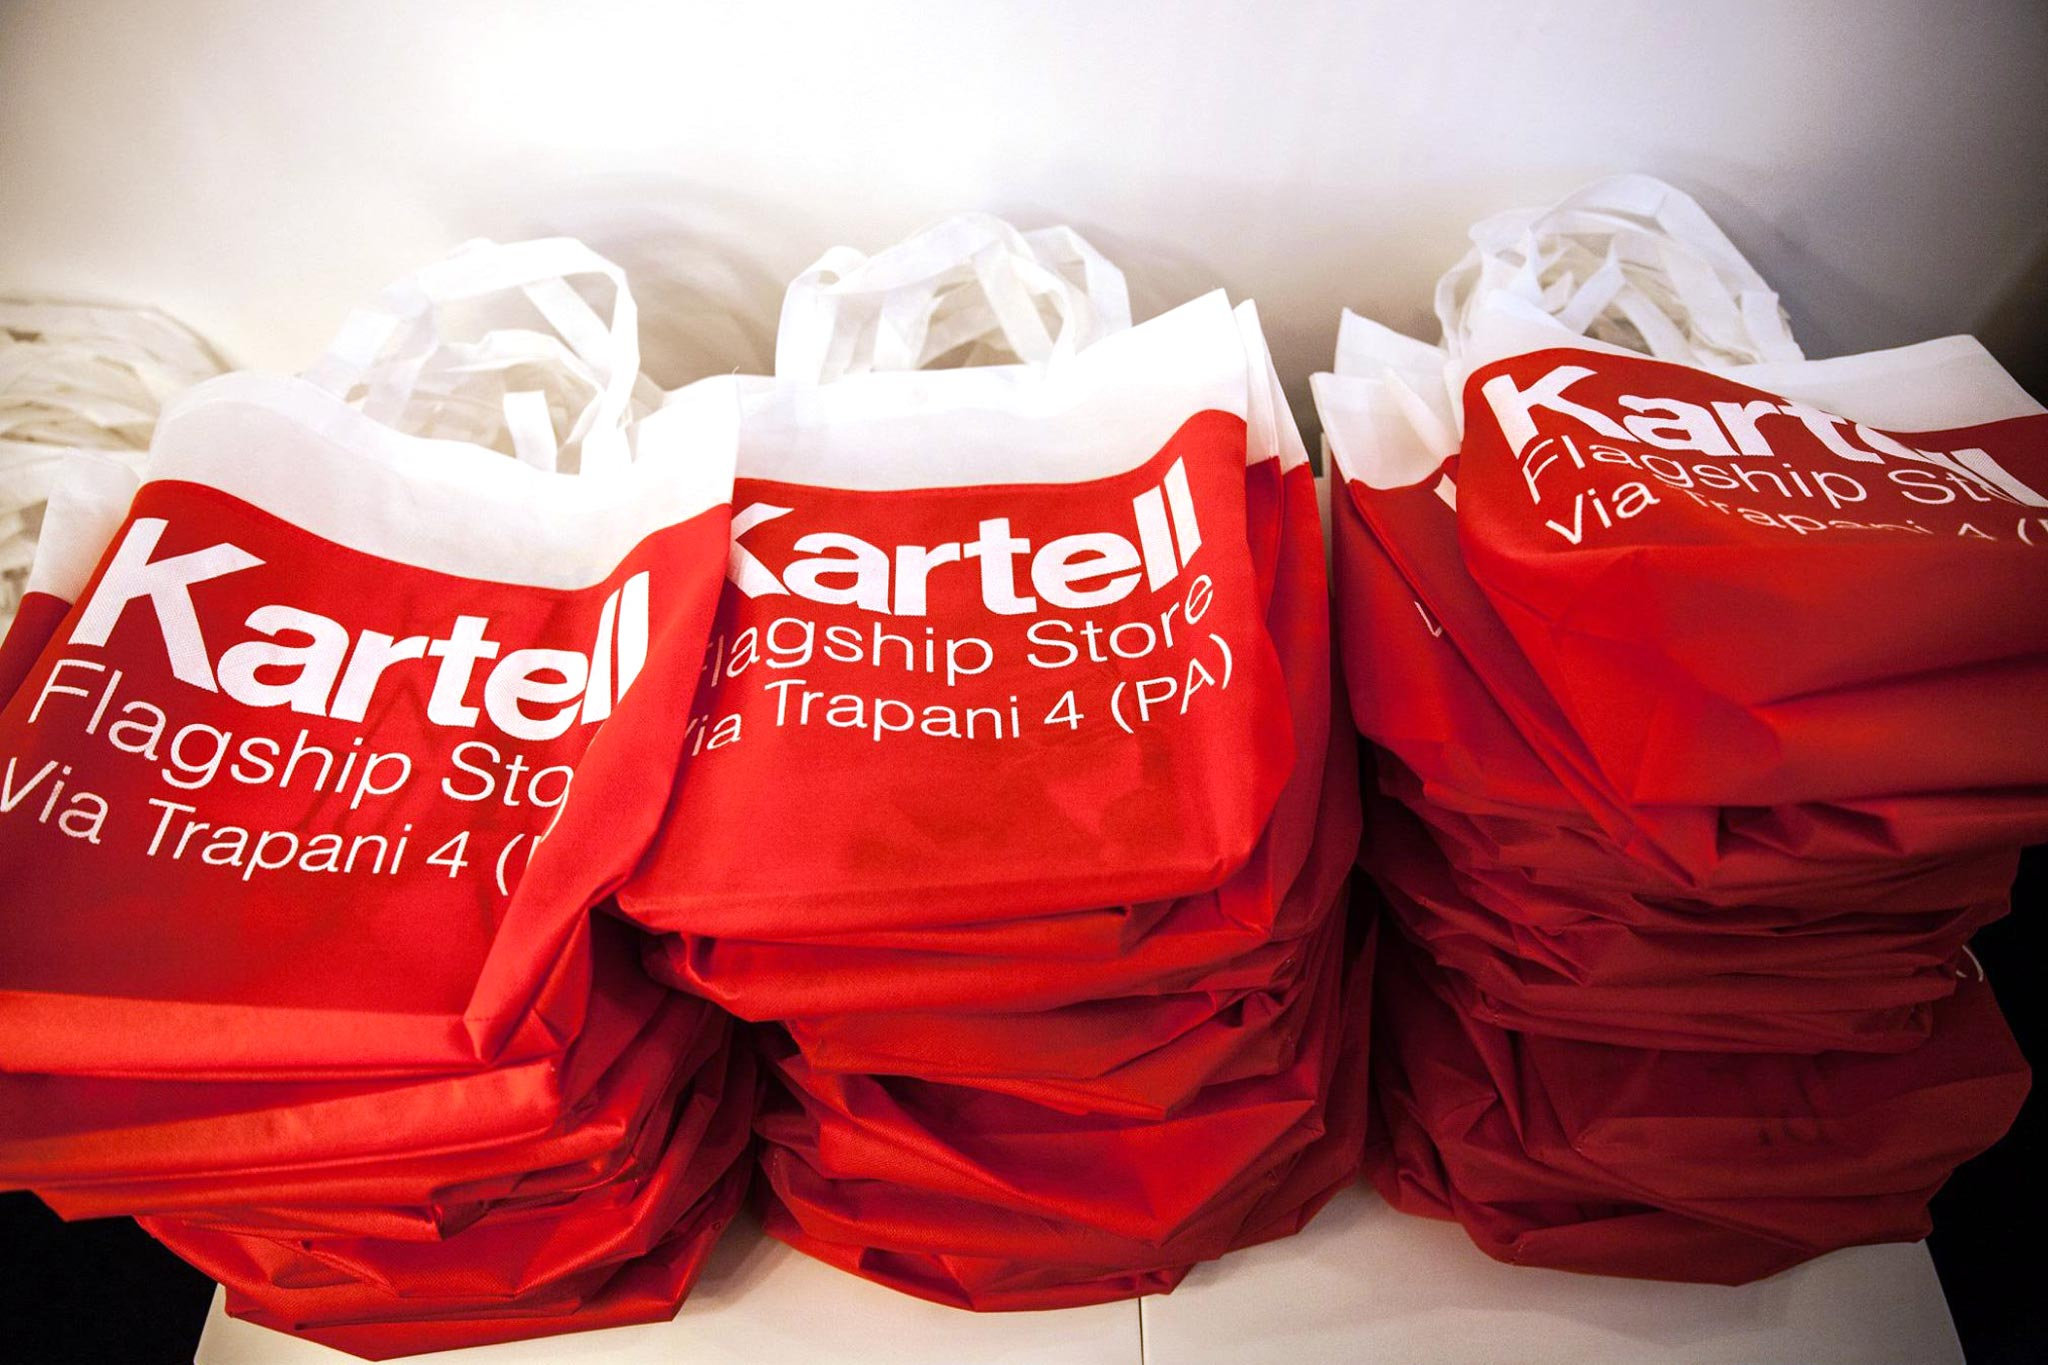 Kartell flagship store Palermo